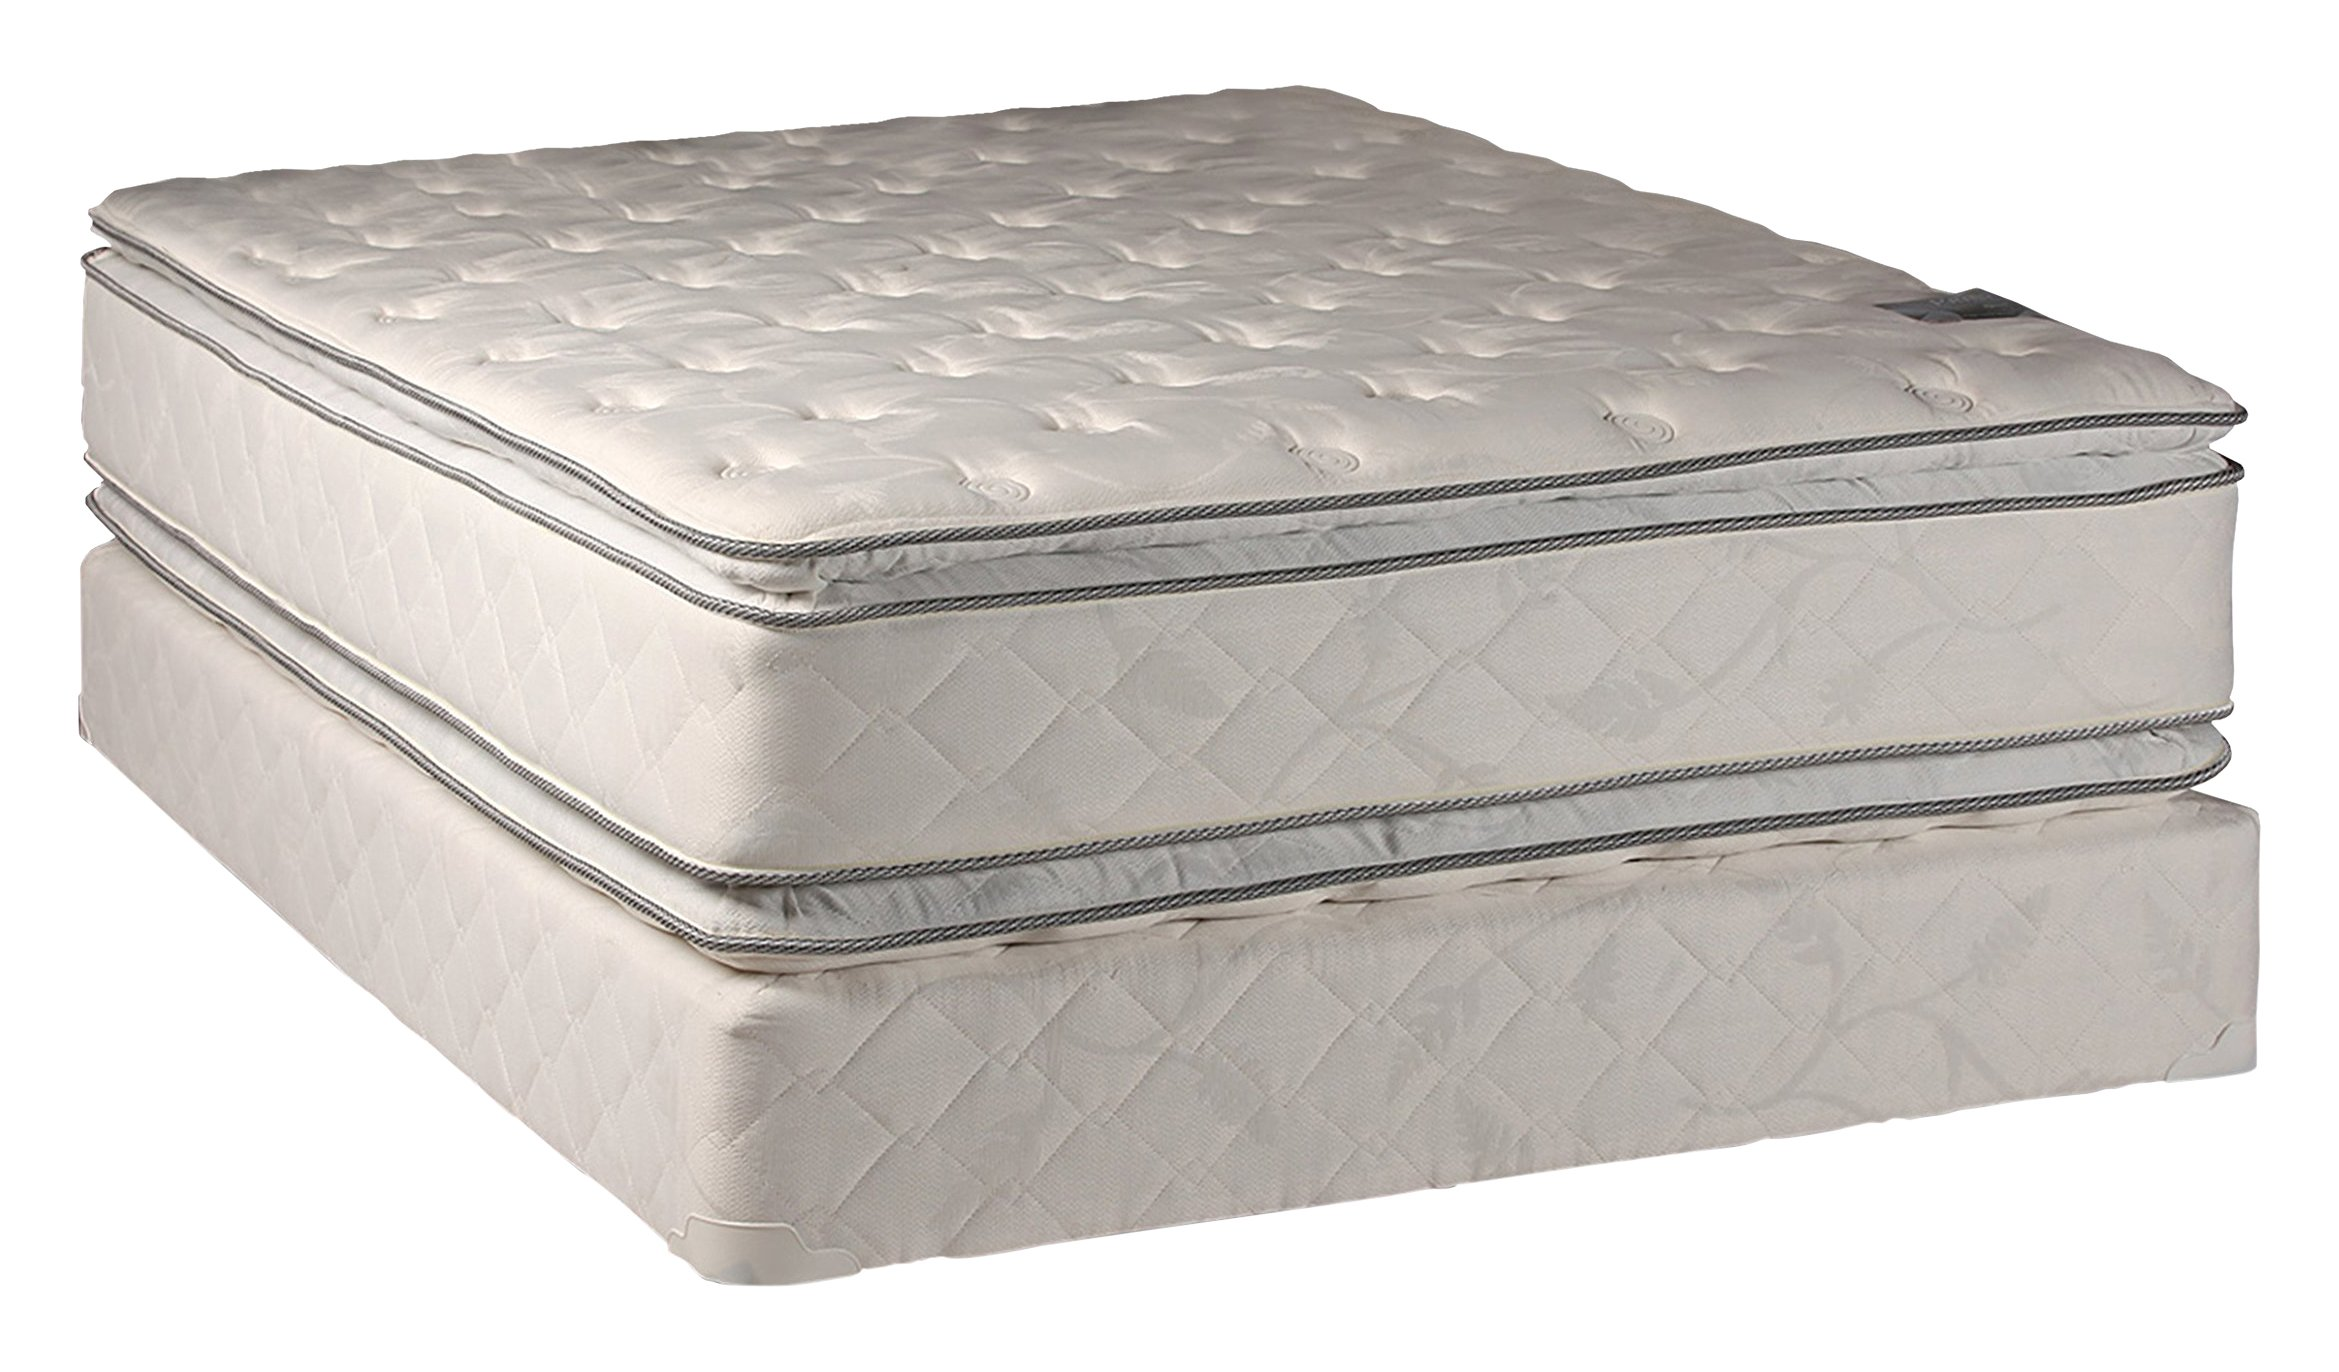 Dream Solutions Brand Fully Assembled Double Sided Pillow Top, Full size set